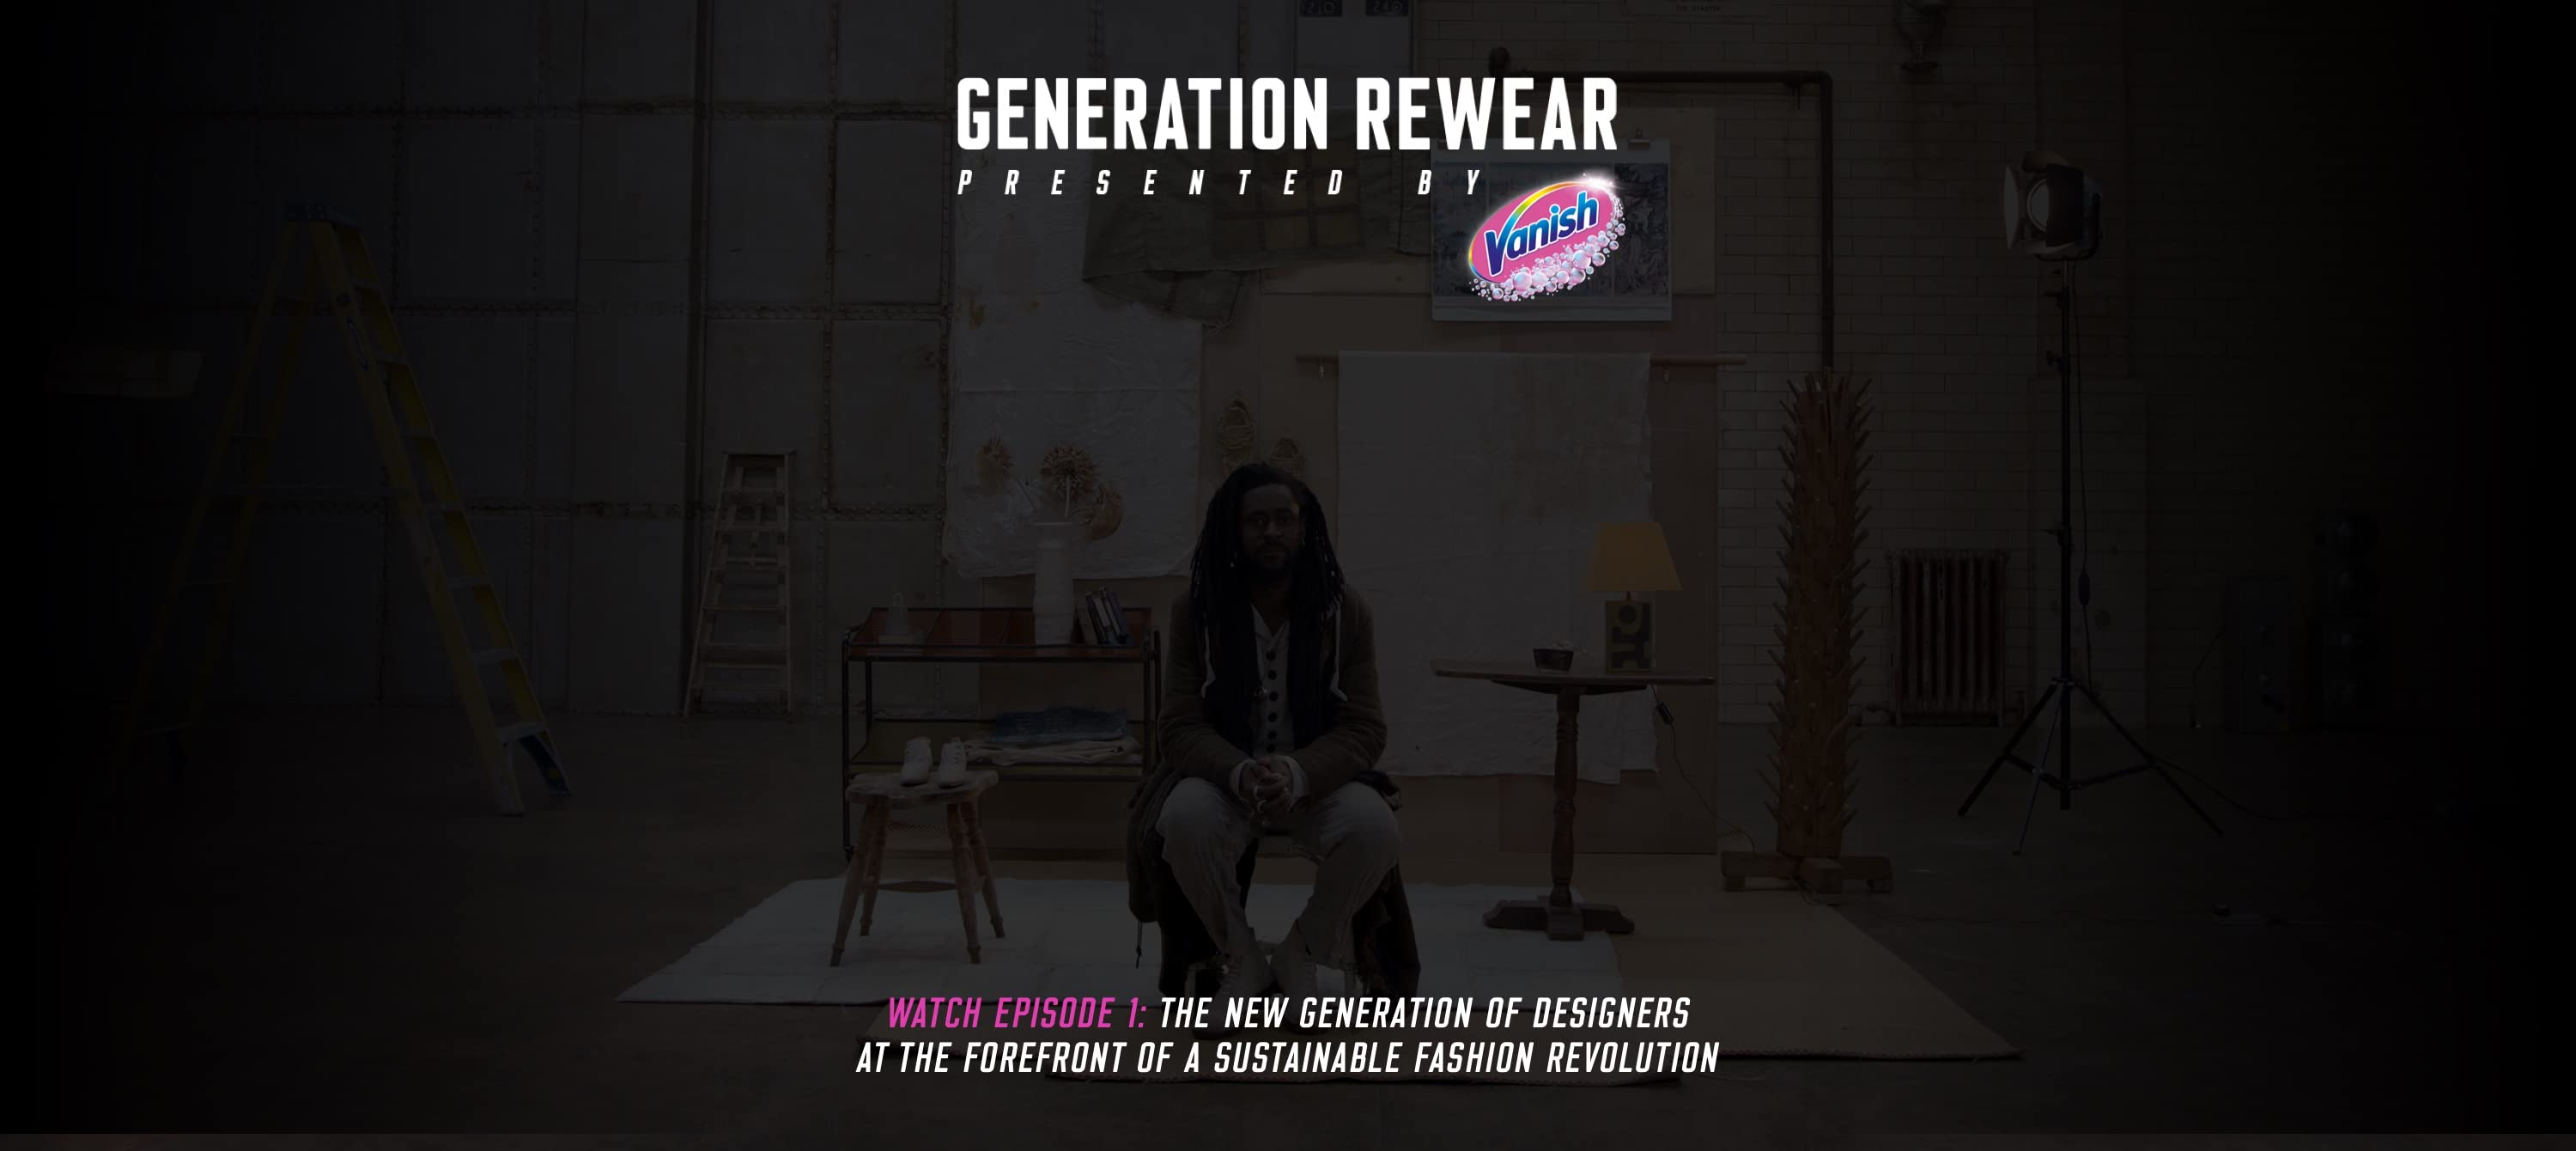 Generation Rewear. Presented by Vanish.  Watch Episode 1: The new generation of designers at the forefront of a sustainable fashion revolution.